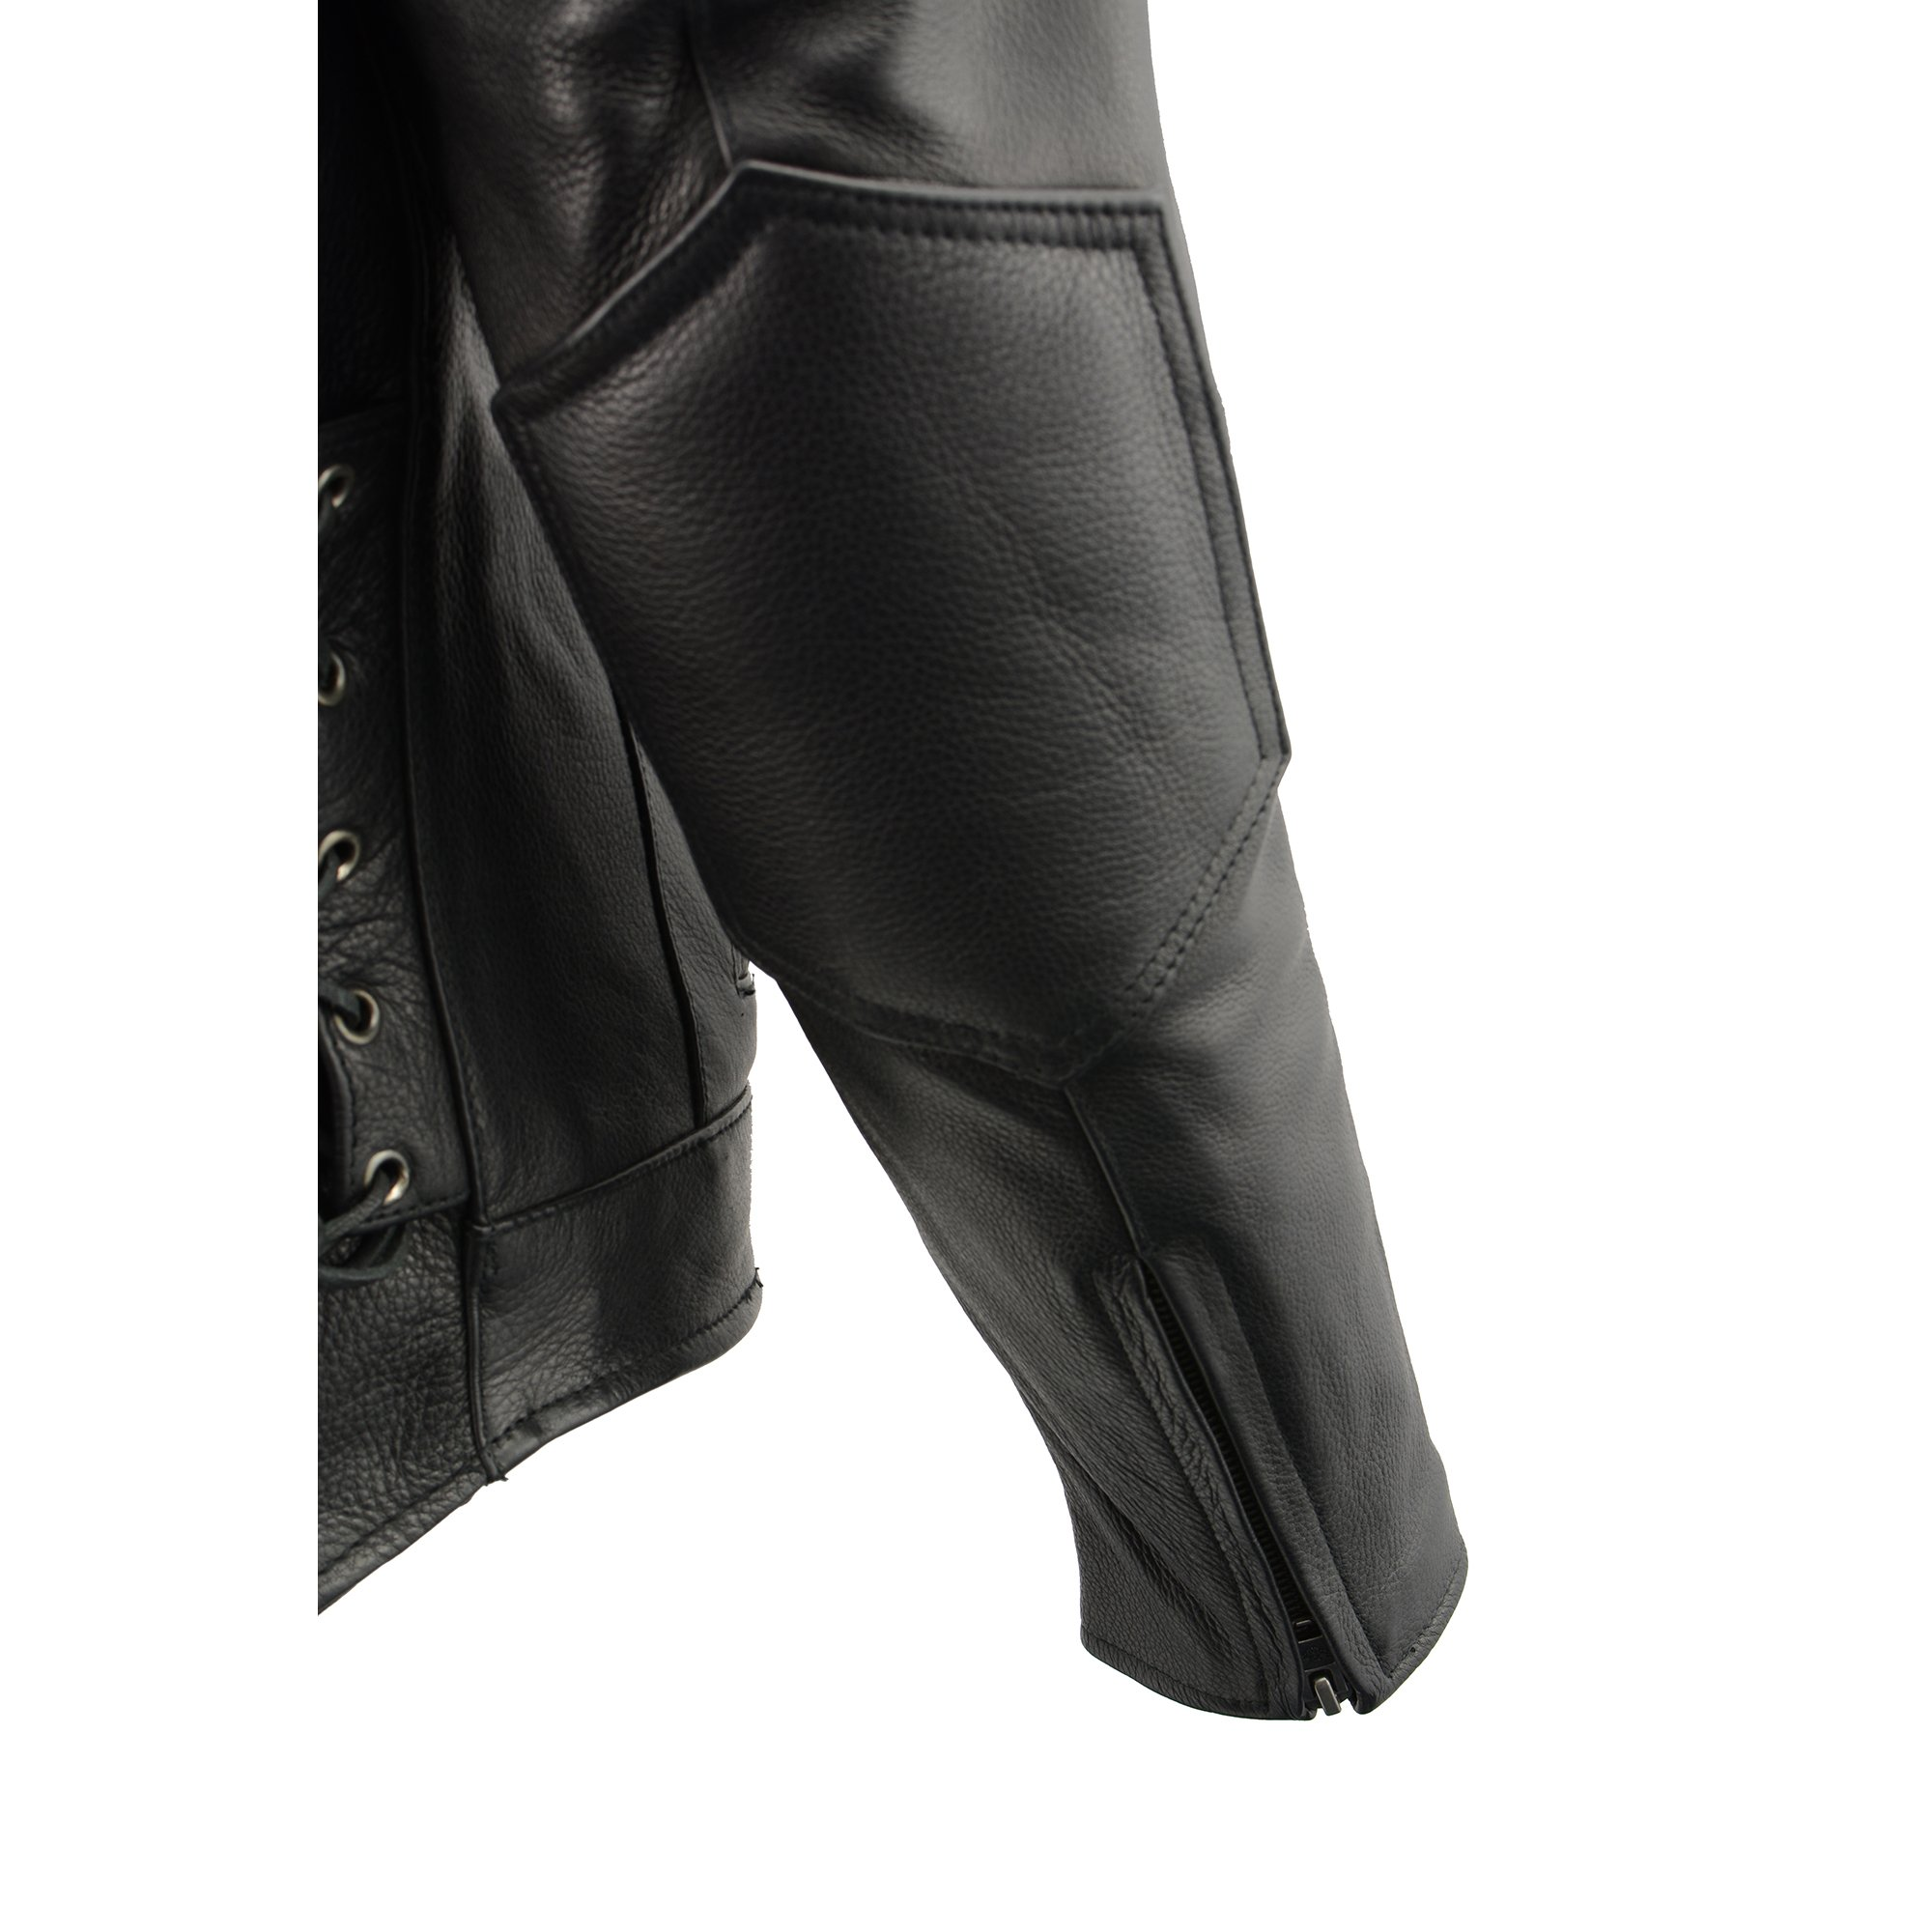 Milwaukee Leather Men's Side Lace Vented Scooter Jacket (Black, 5X-LargeTall) by Milwaukee Leather (Image #11)